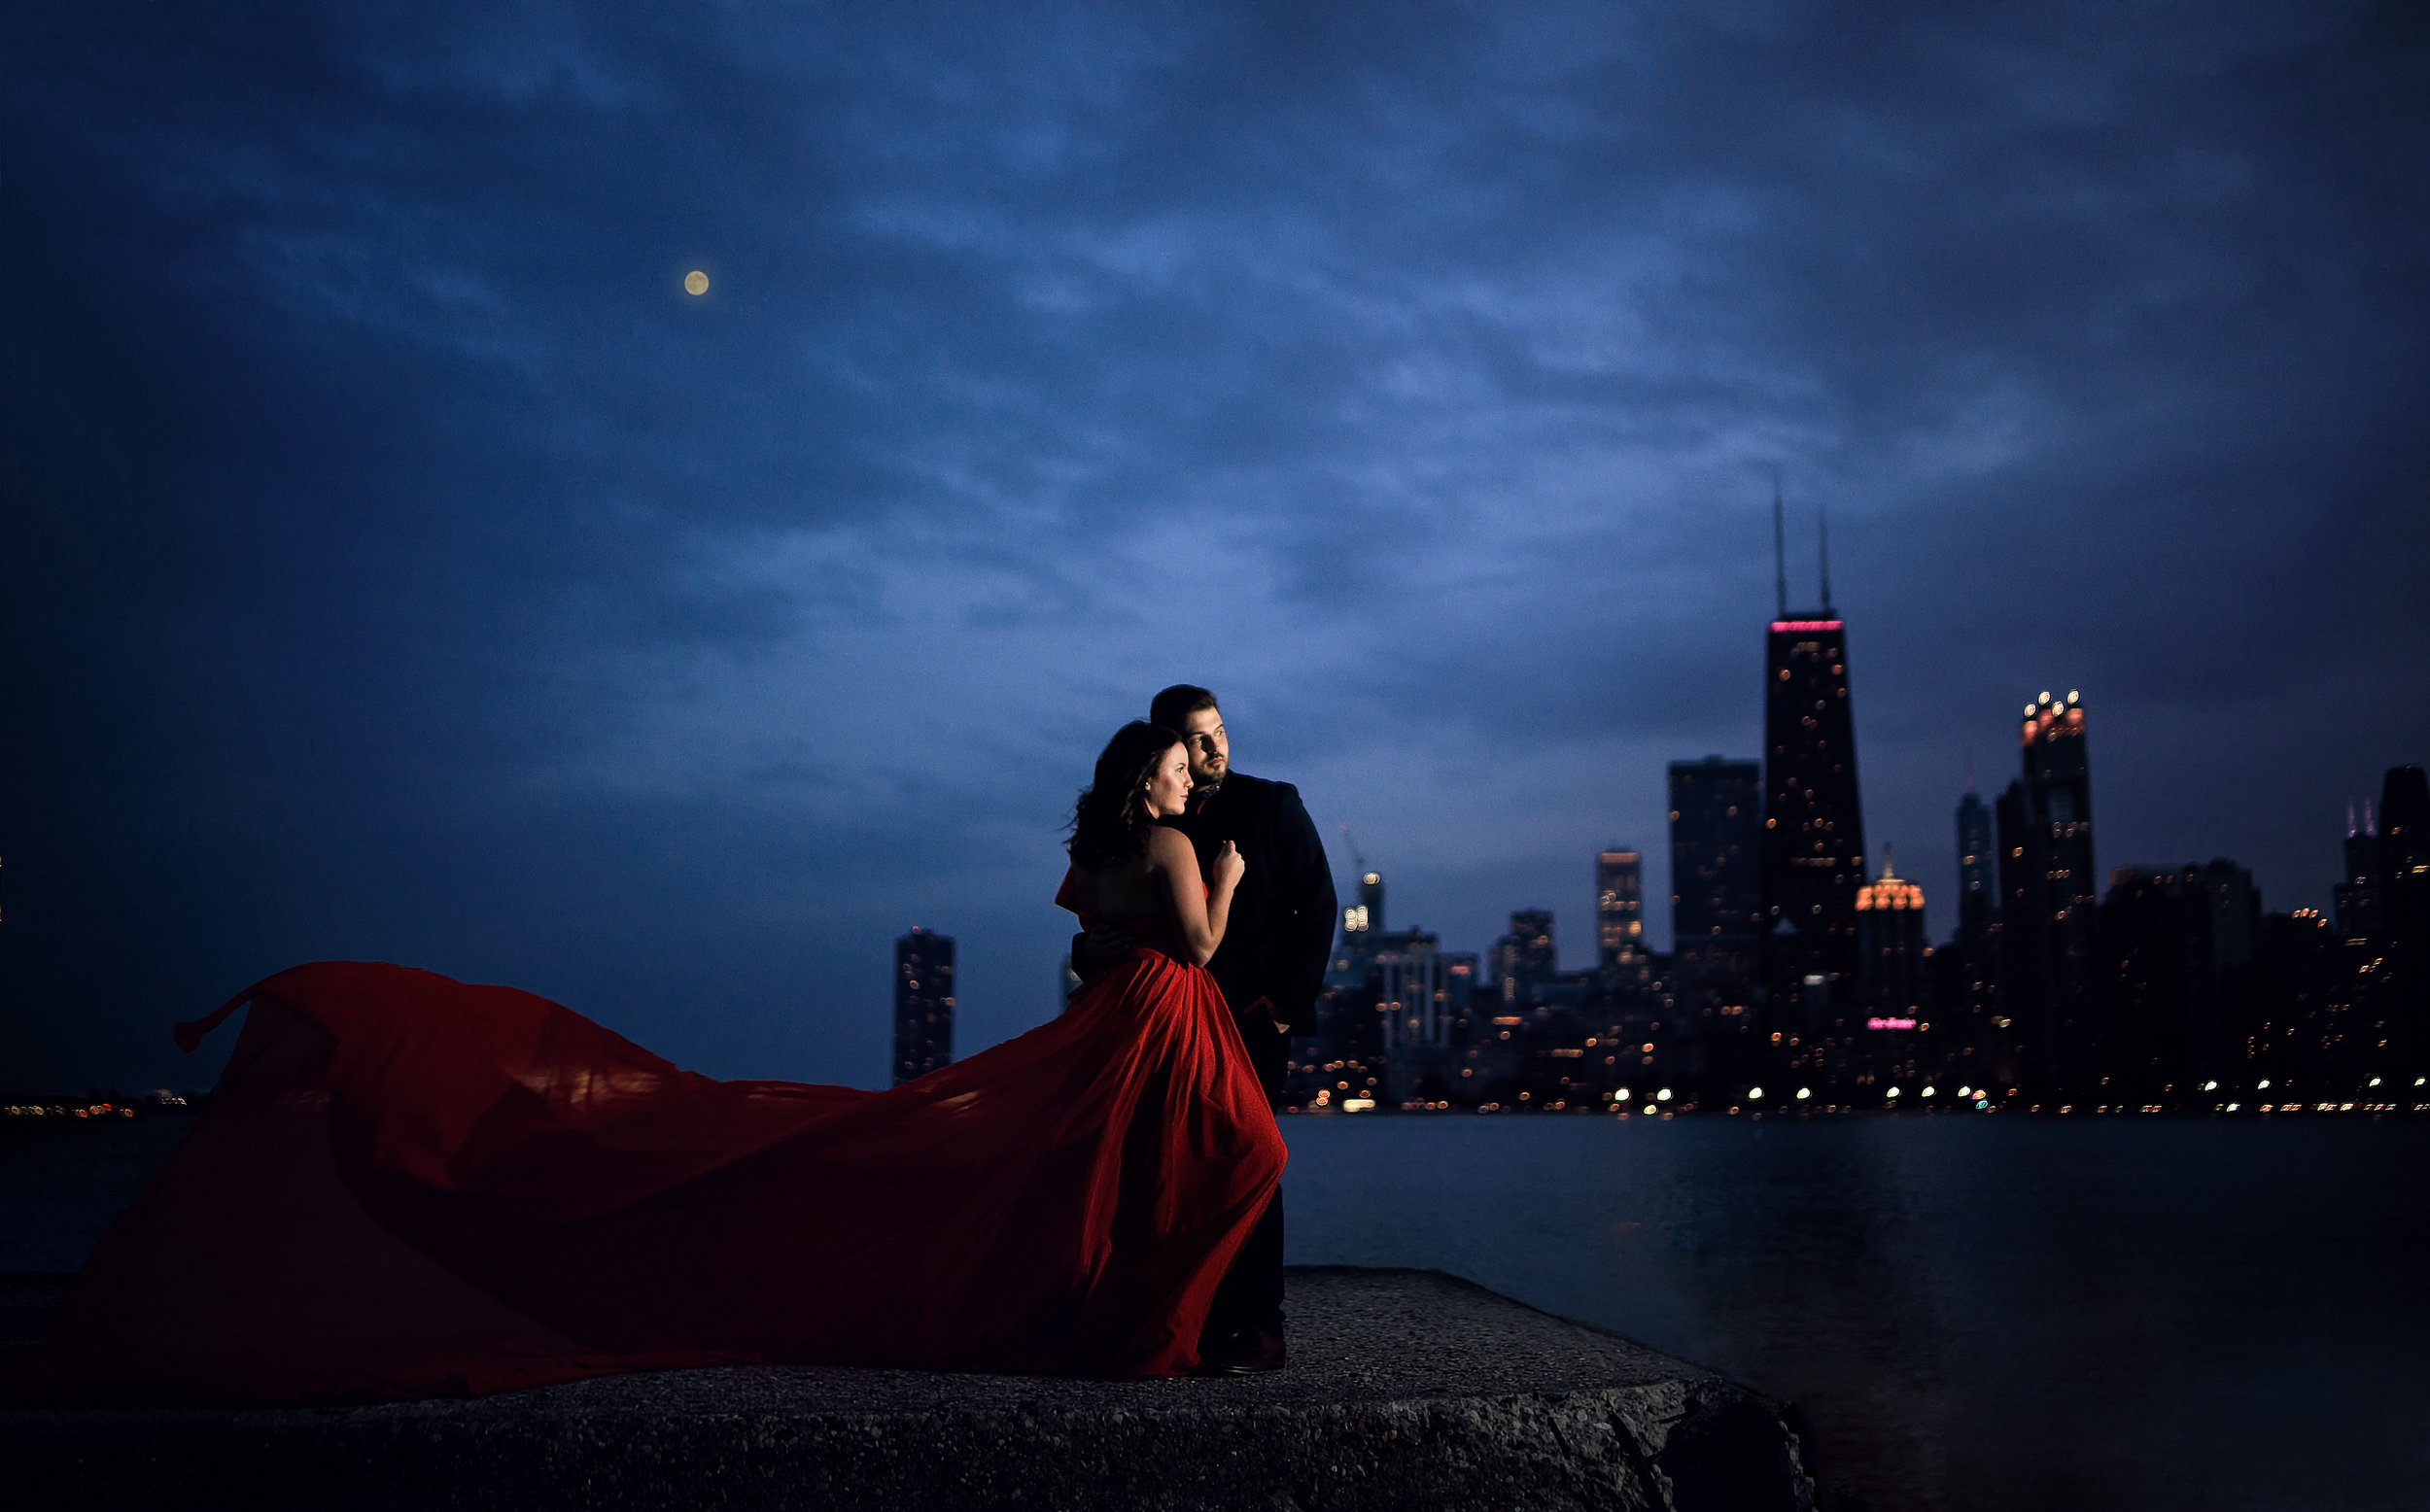 north-beach-downtown-chicago-engagement-session-flowing-red-dress-with-moon-over-john-hancock-building.jpg